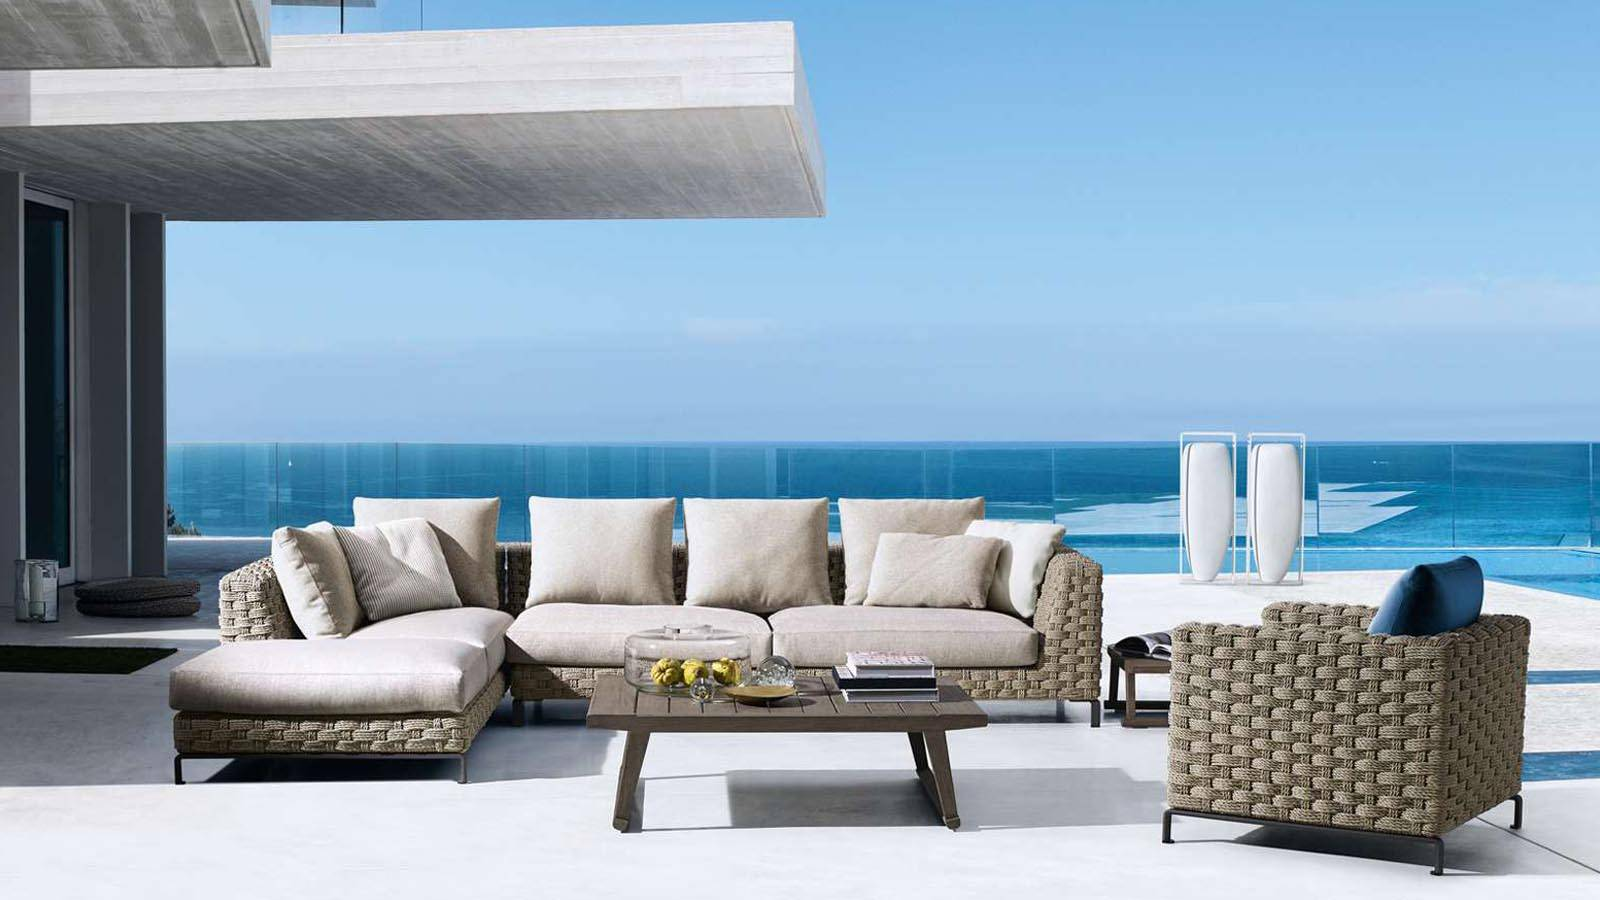 BeB Italia Outdoor High Quality Outdoor Furniture Antonio Citterio Ray